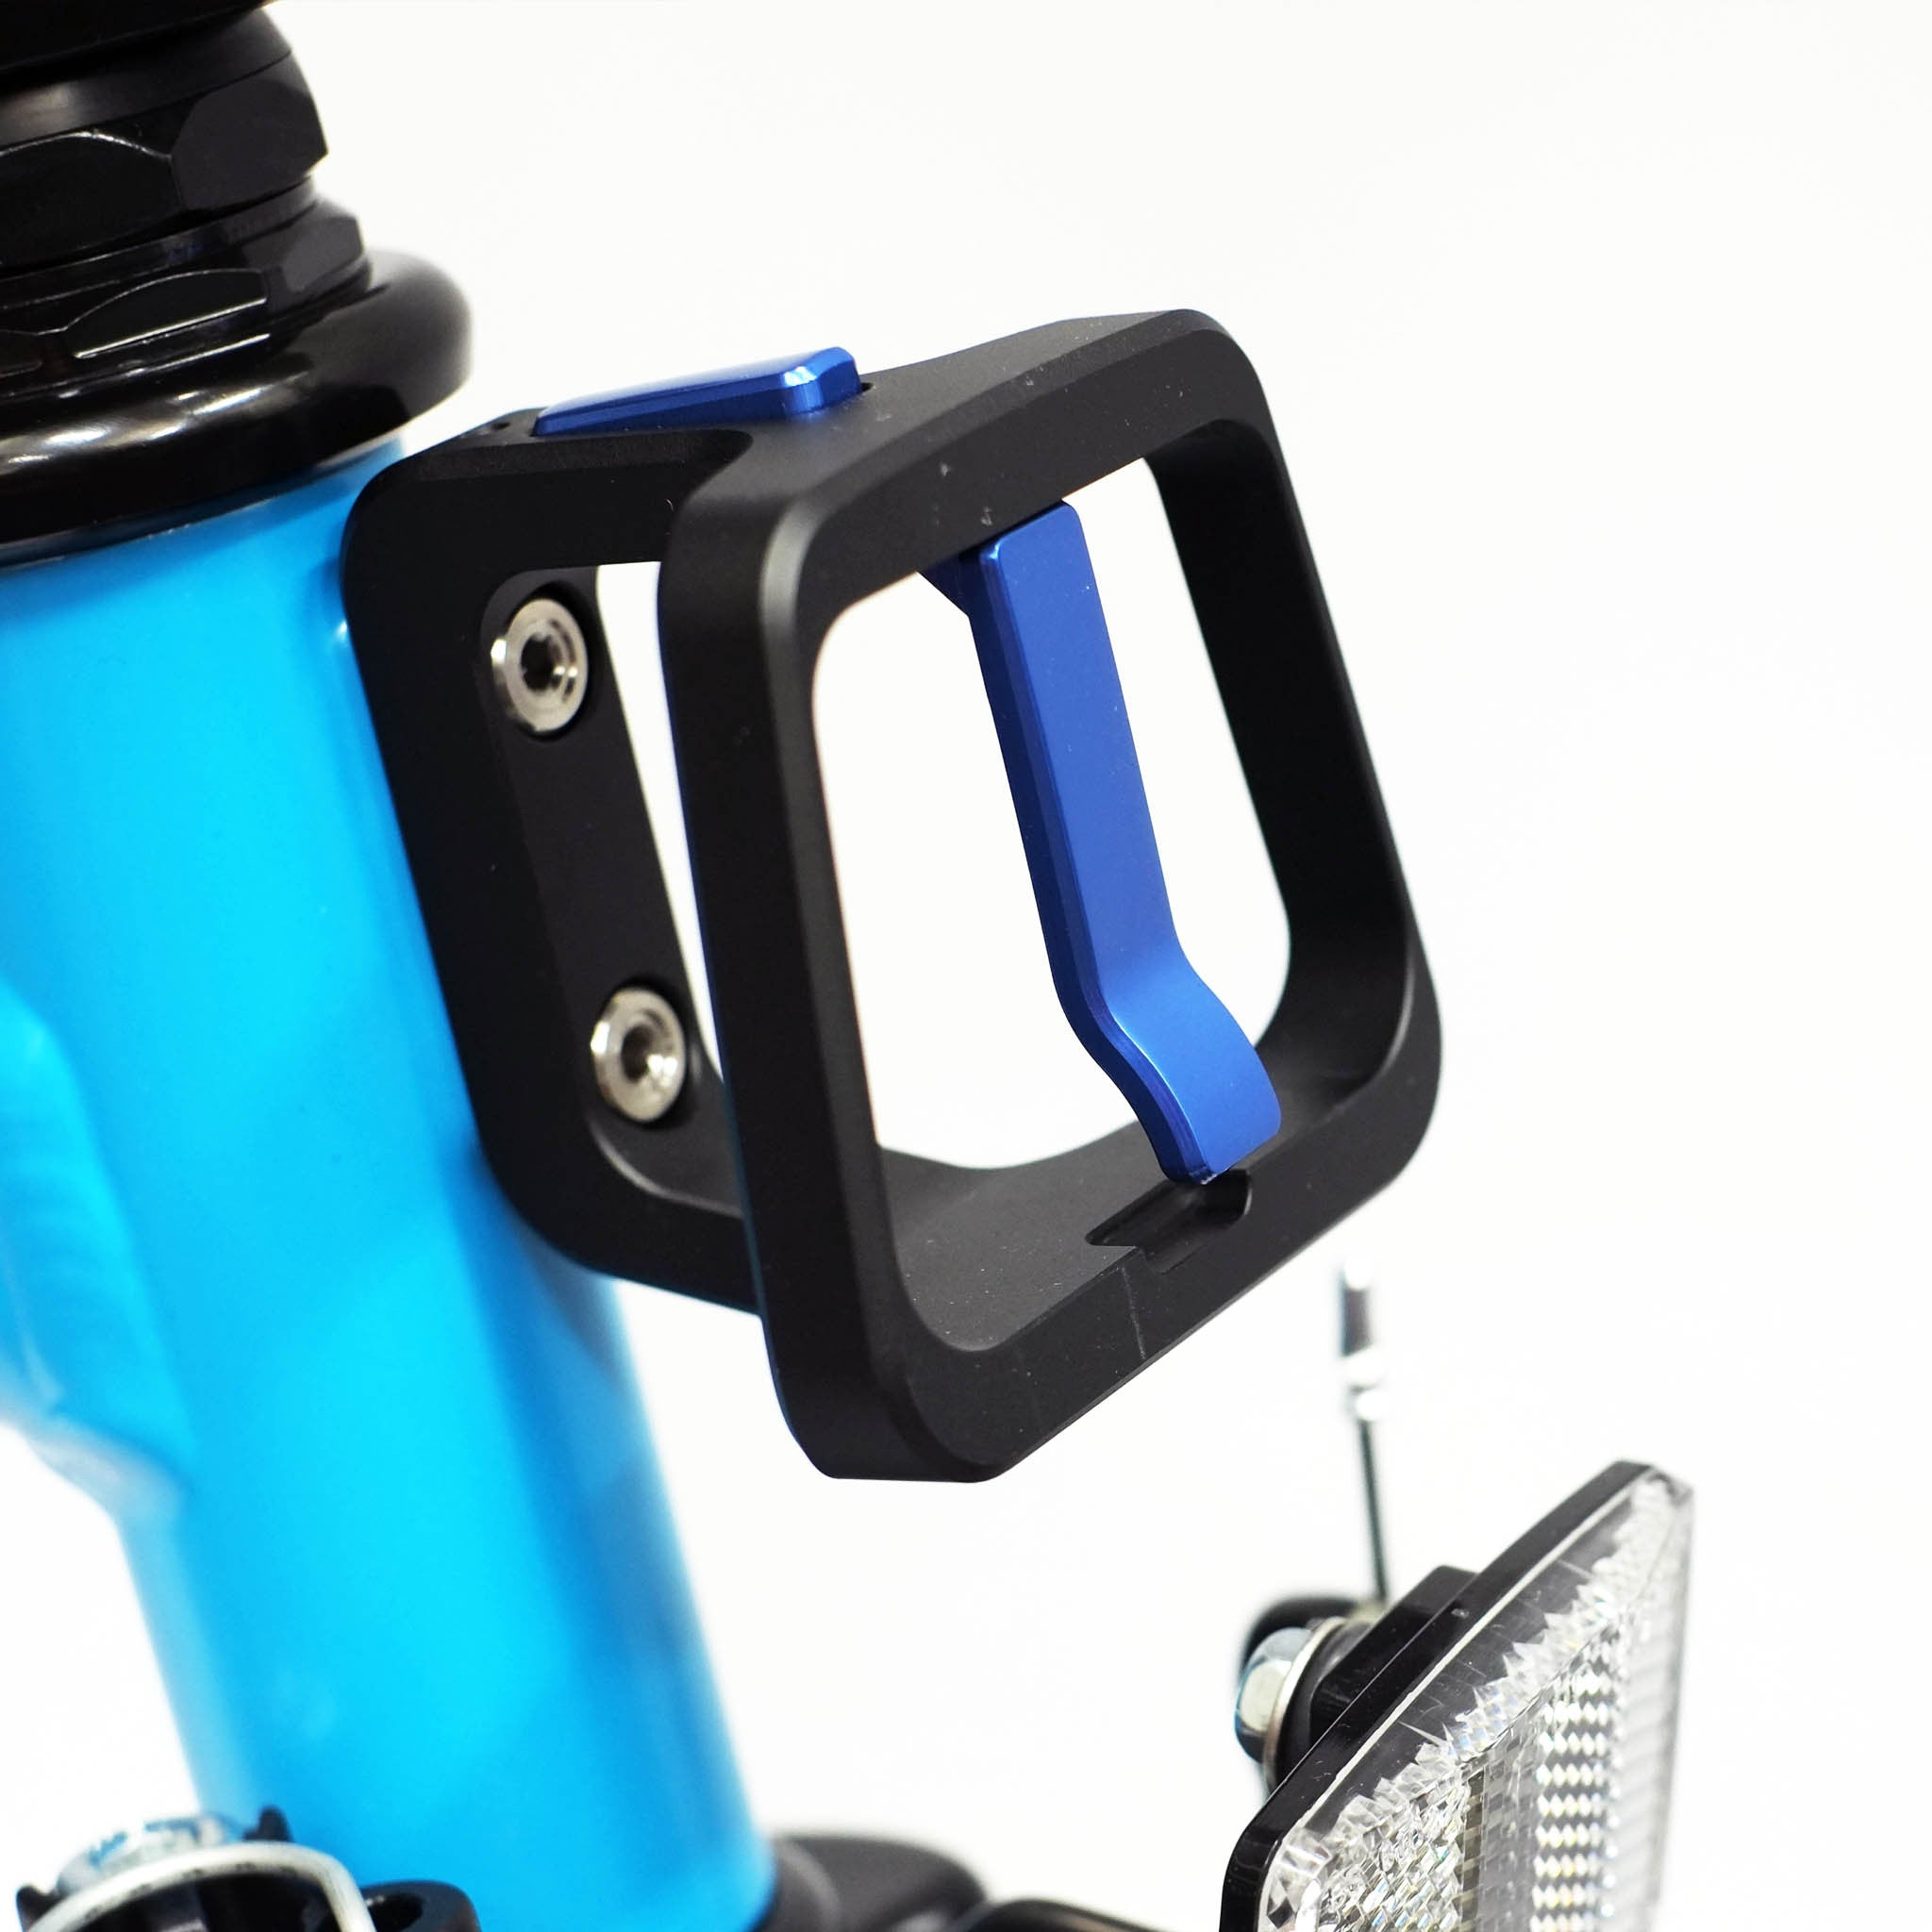 Imperiumcycle Multi S Front Carrier Block For Brompton